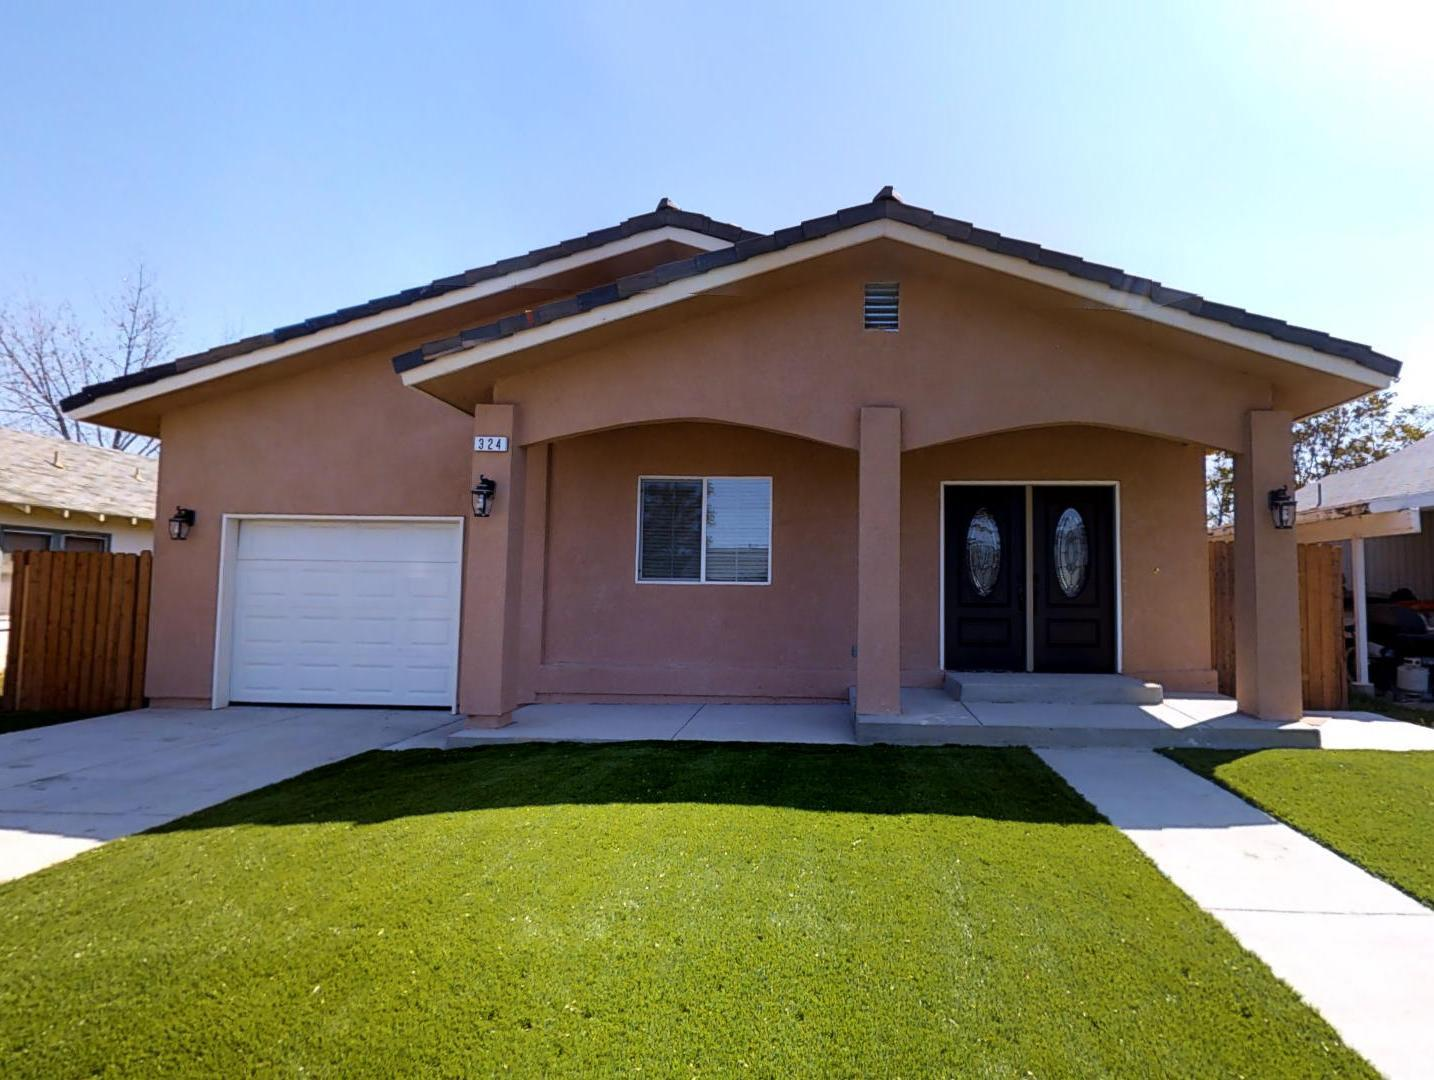 Single Family Home for Sale at 324 E Houston Street Coalinga, California 93210 United States